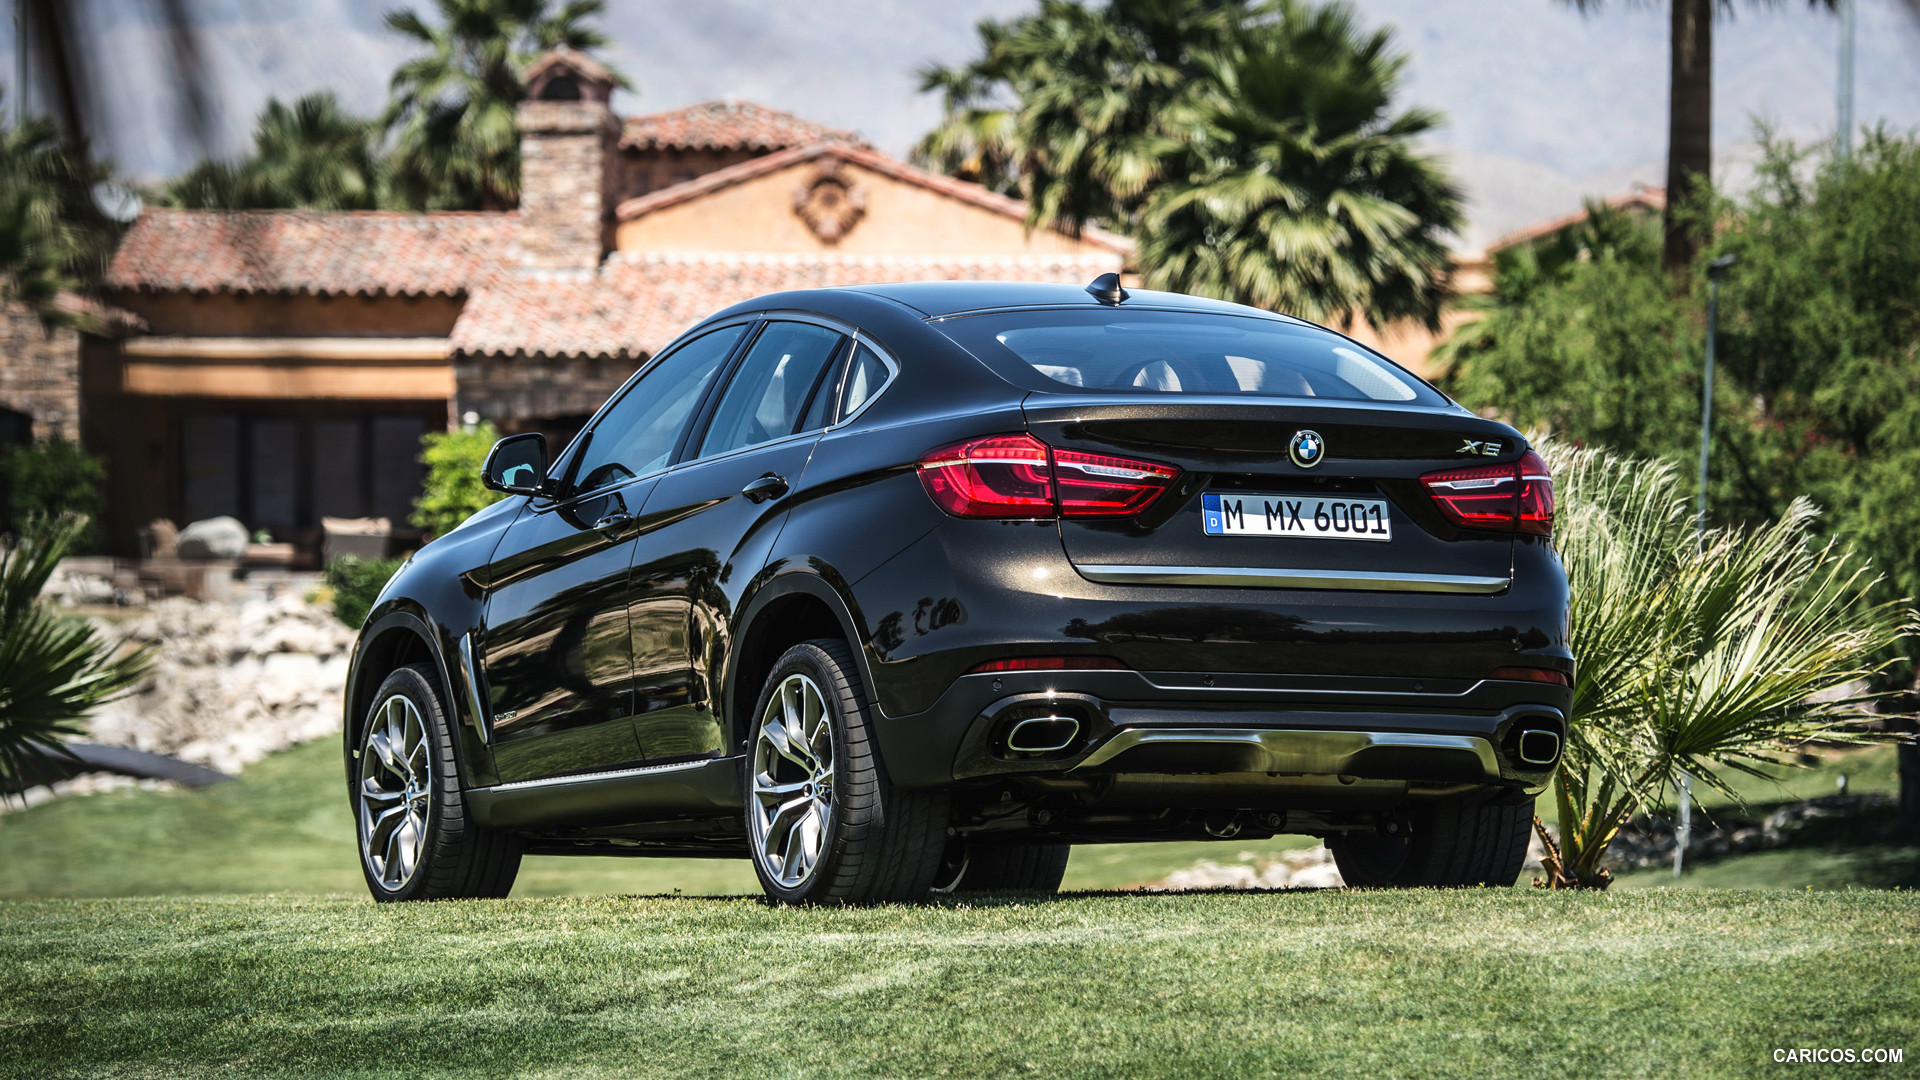 1920x1080 - BMW X6 Wallpapers 17